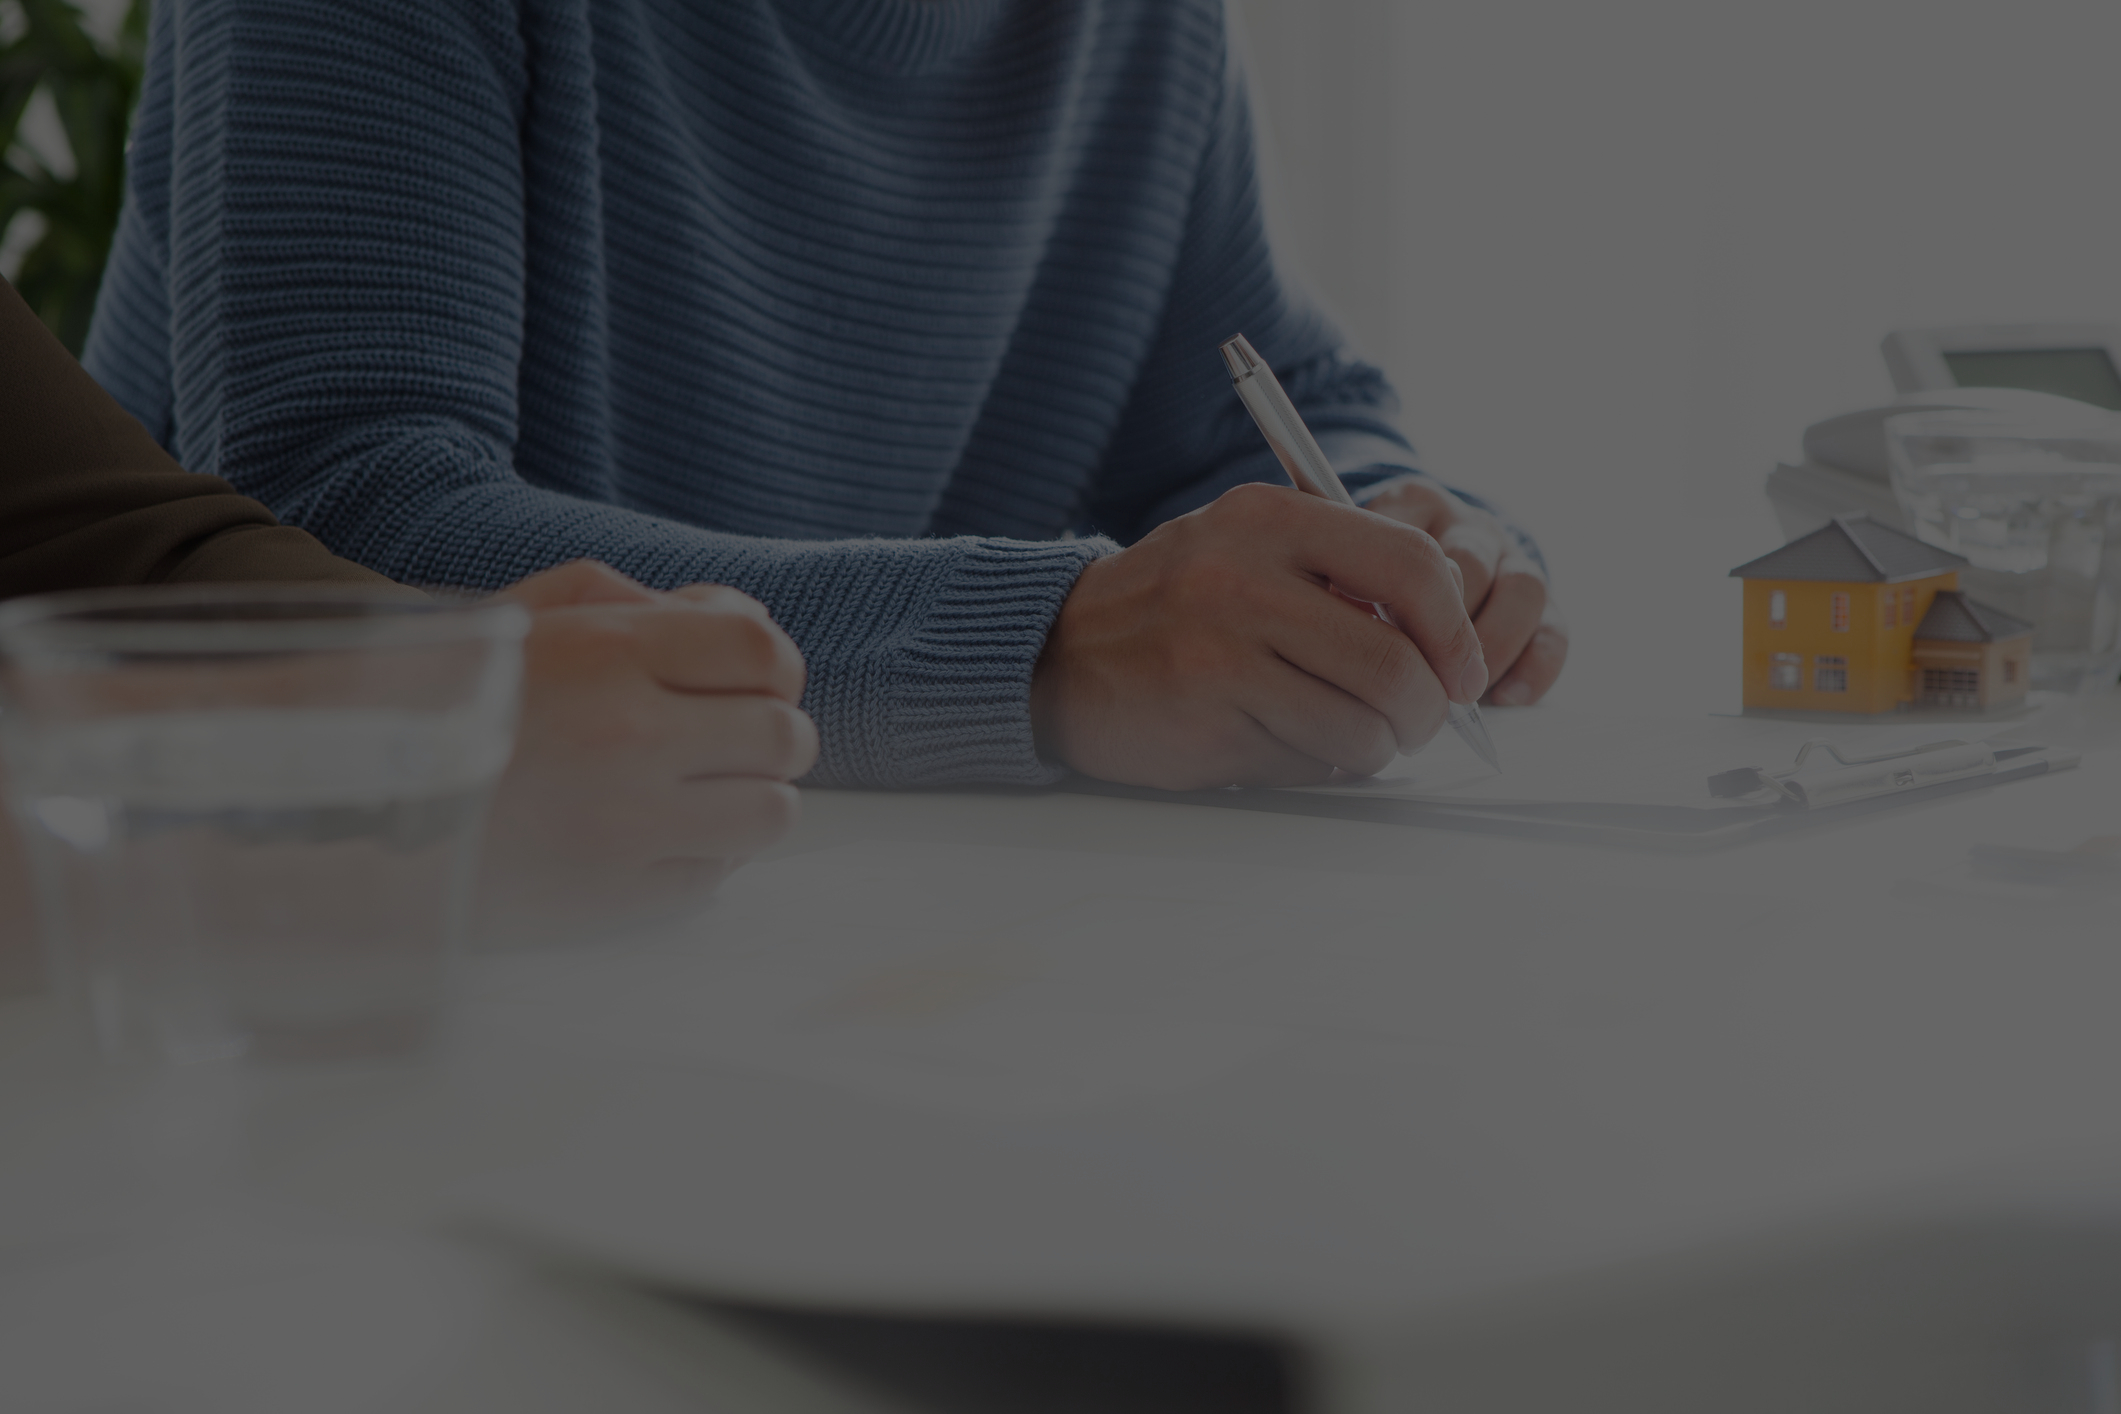 Getting down to business. - Seamlessly manage your important contractual processes and responsibilities. Finance, commissions, conditions, claims, payments, delays, it's all here.Click here to learn more about Contract Administration >